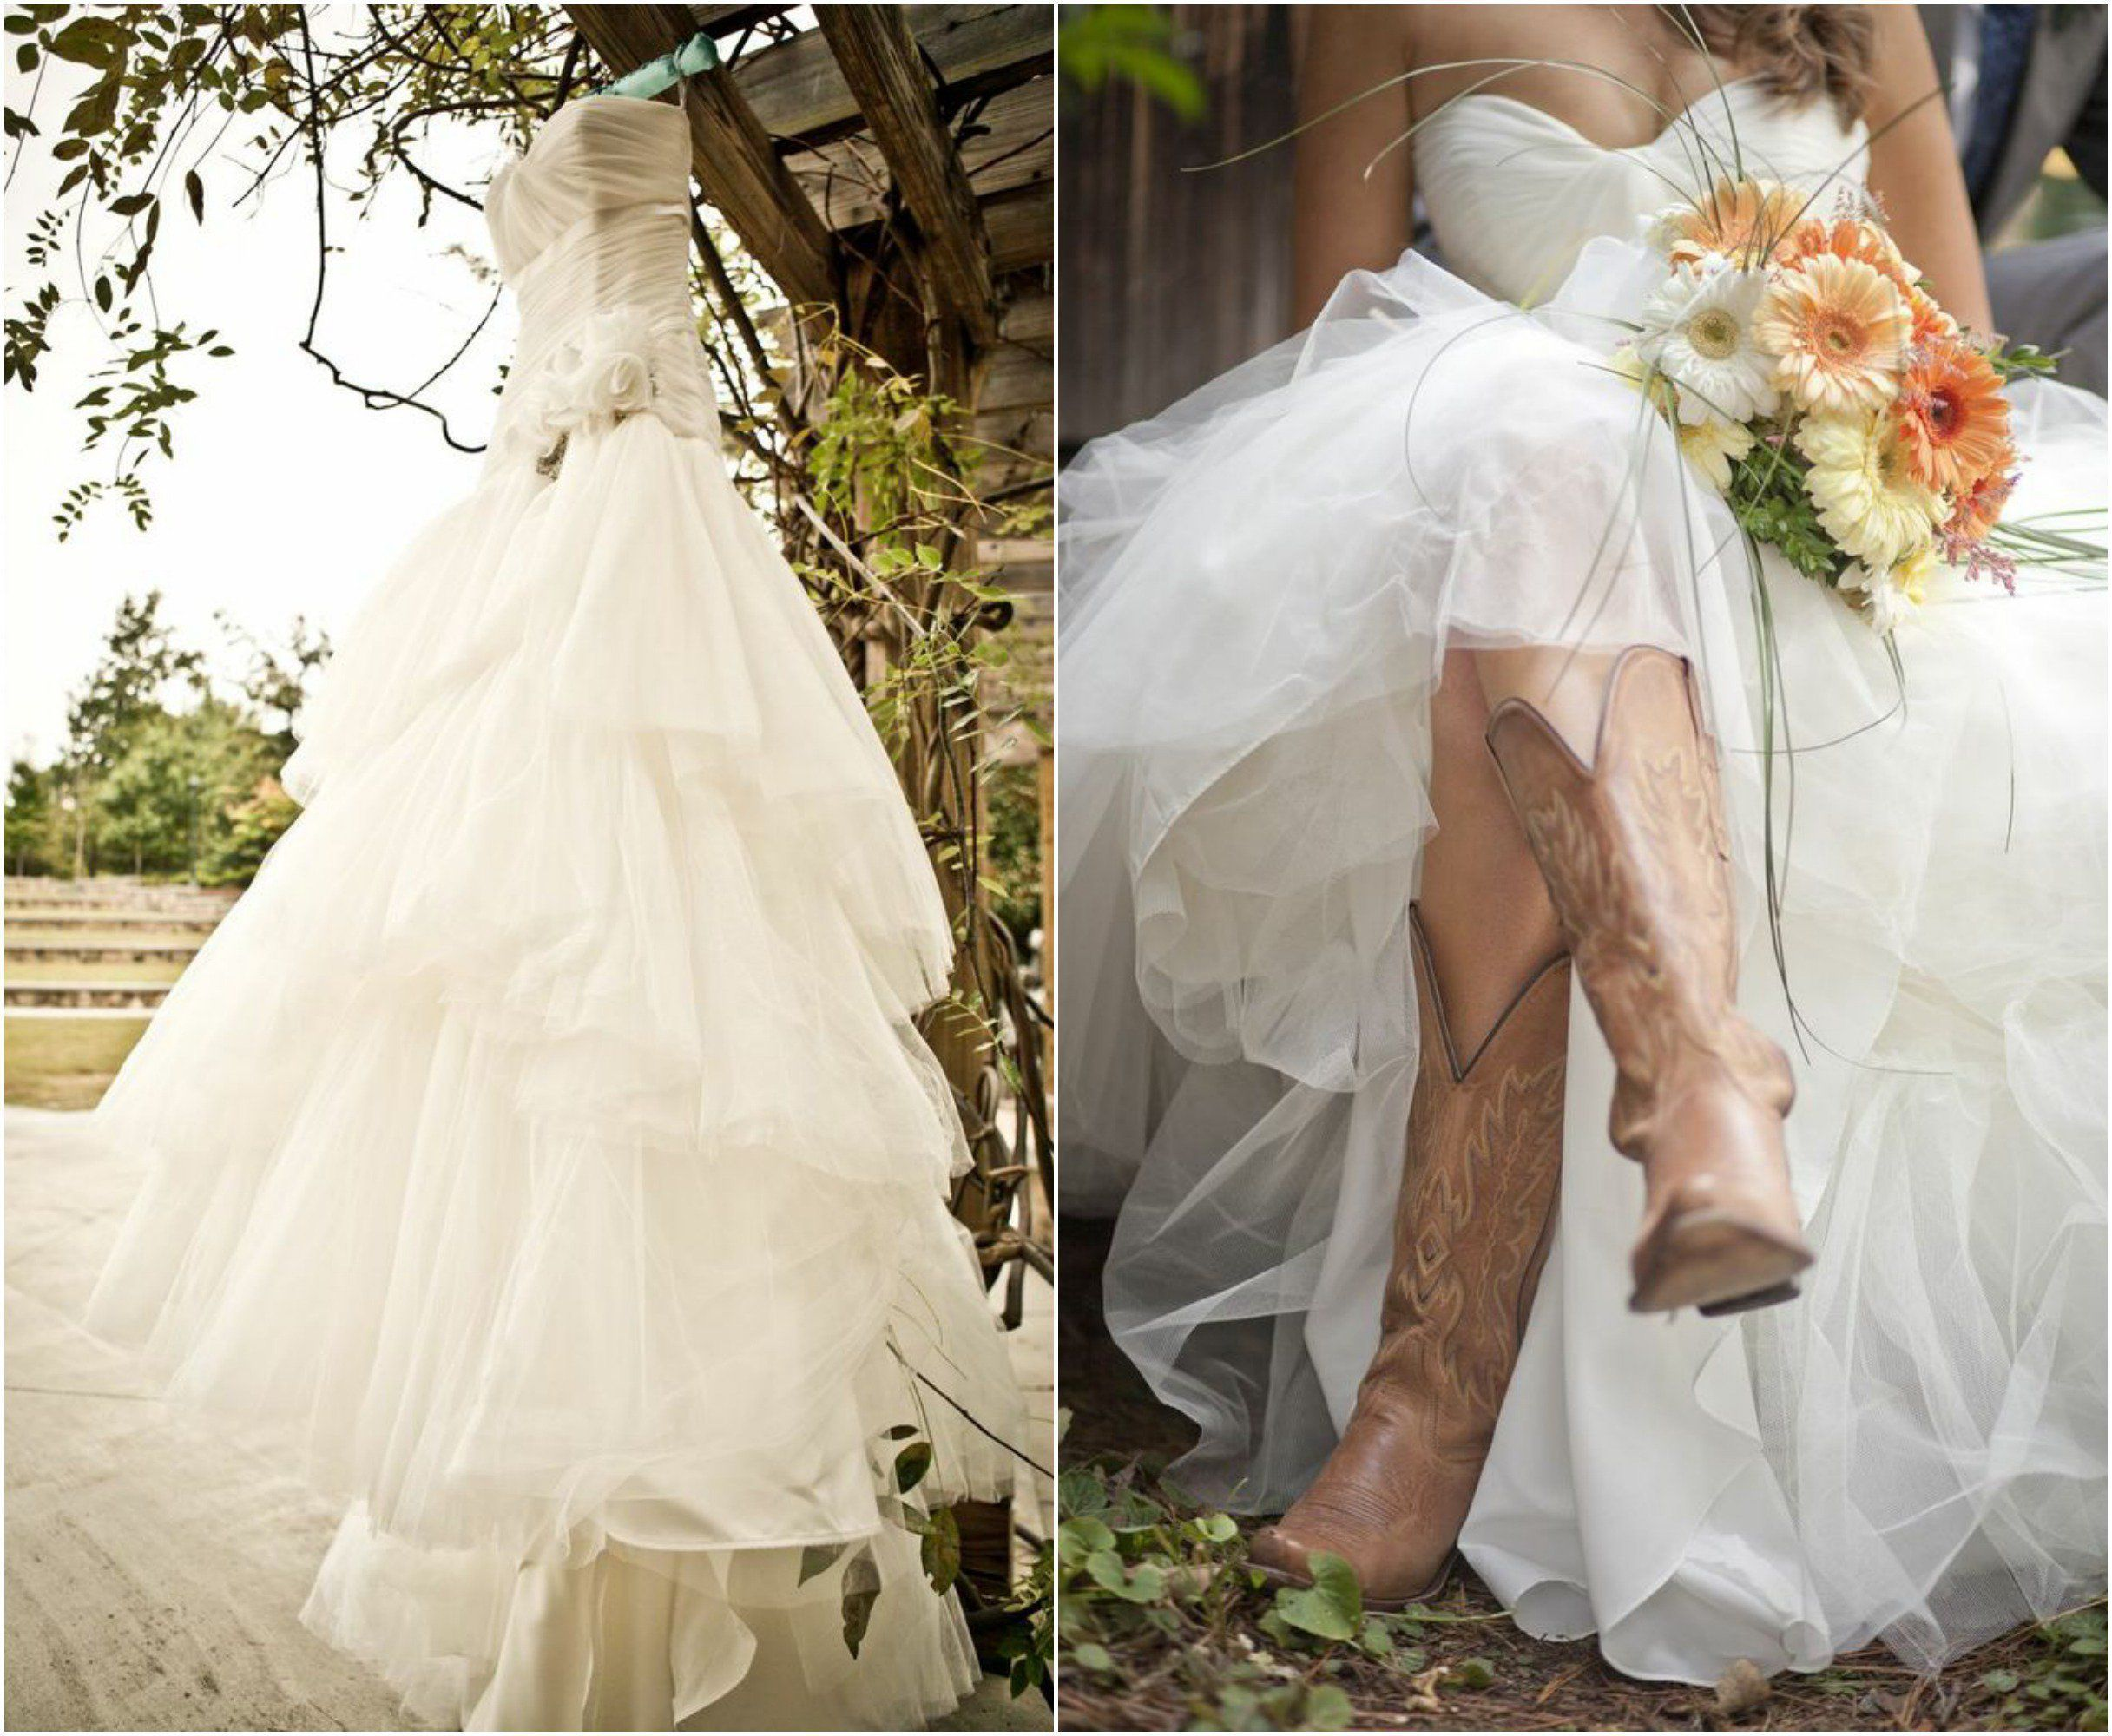 Wedding dresses with cowgirl boots  Rustic Wedding With Bridesmaids In Cowboy Boots  Cowboy boots